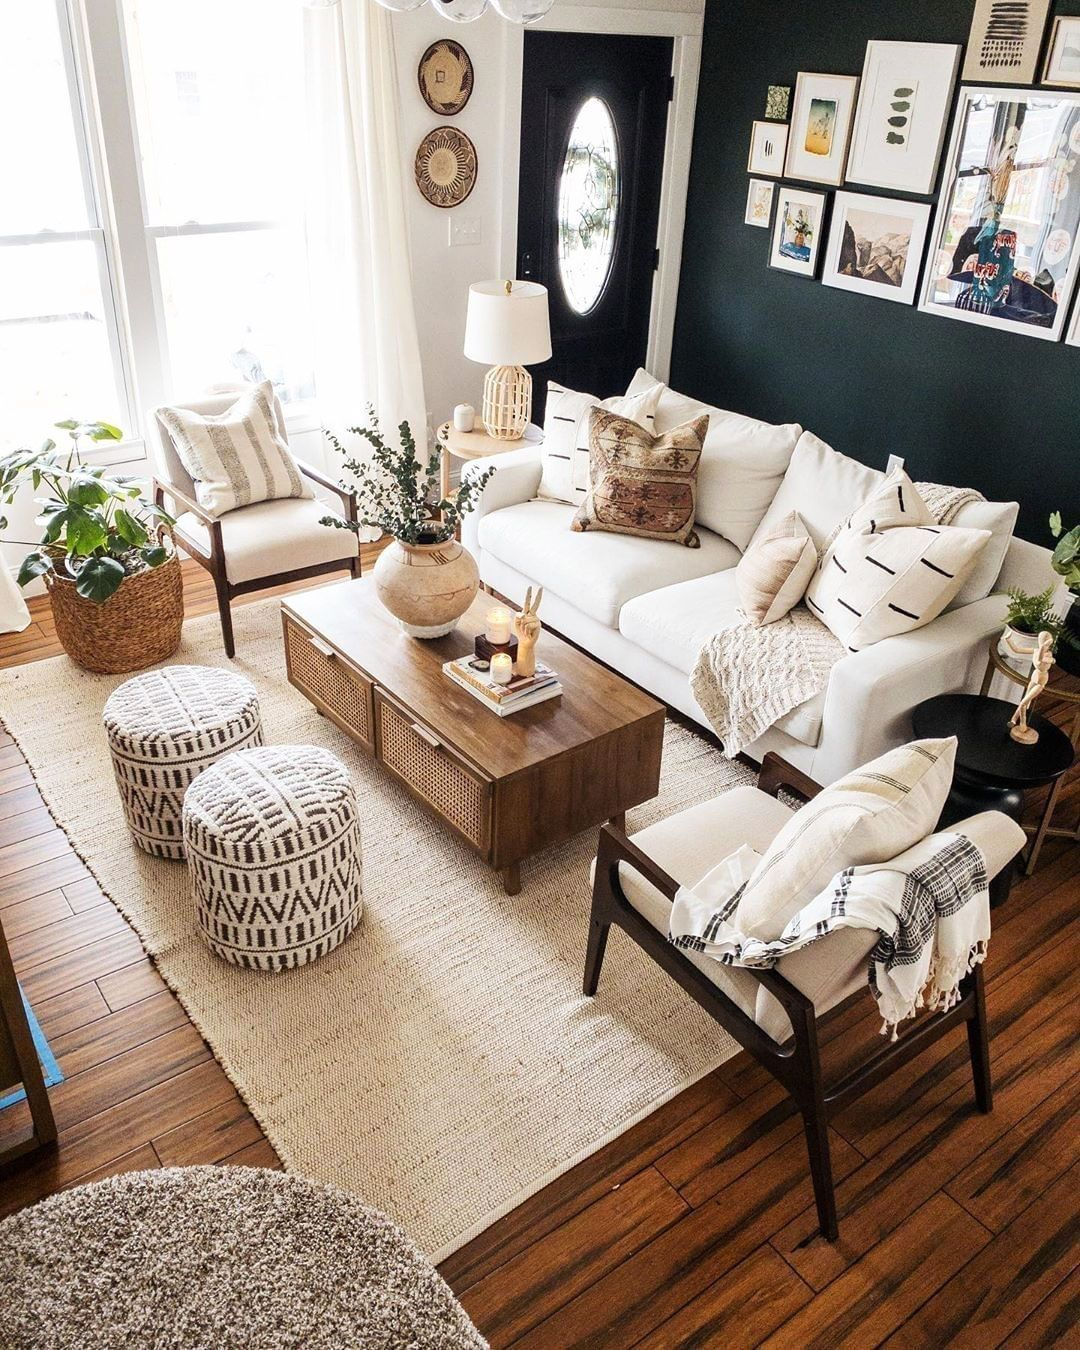 17 Home Decor Ideas For Living Room On A Budget In 2020 Li